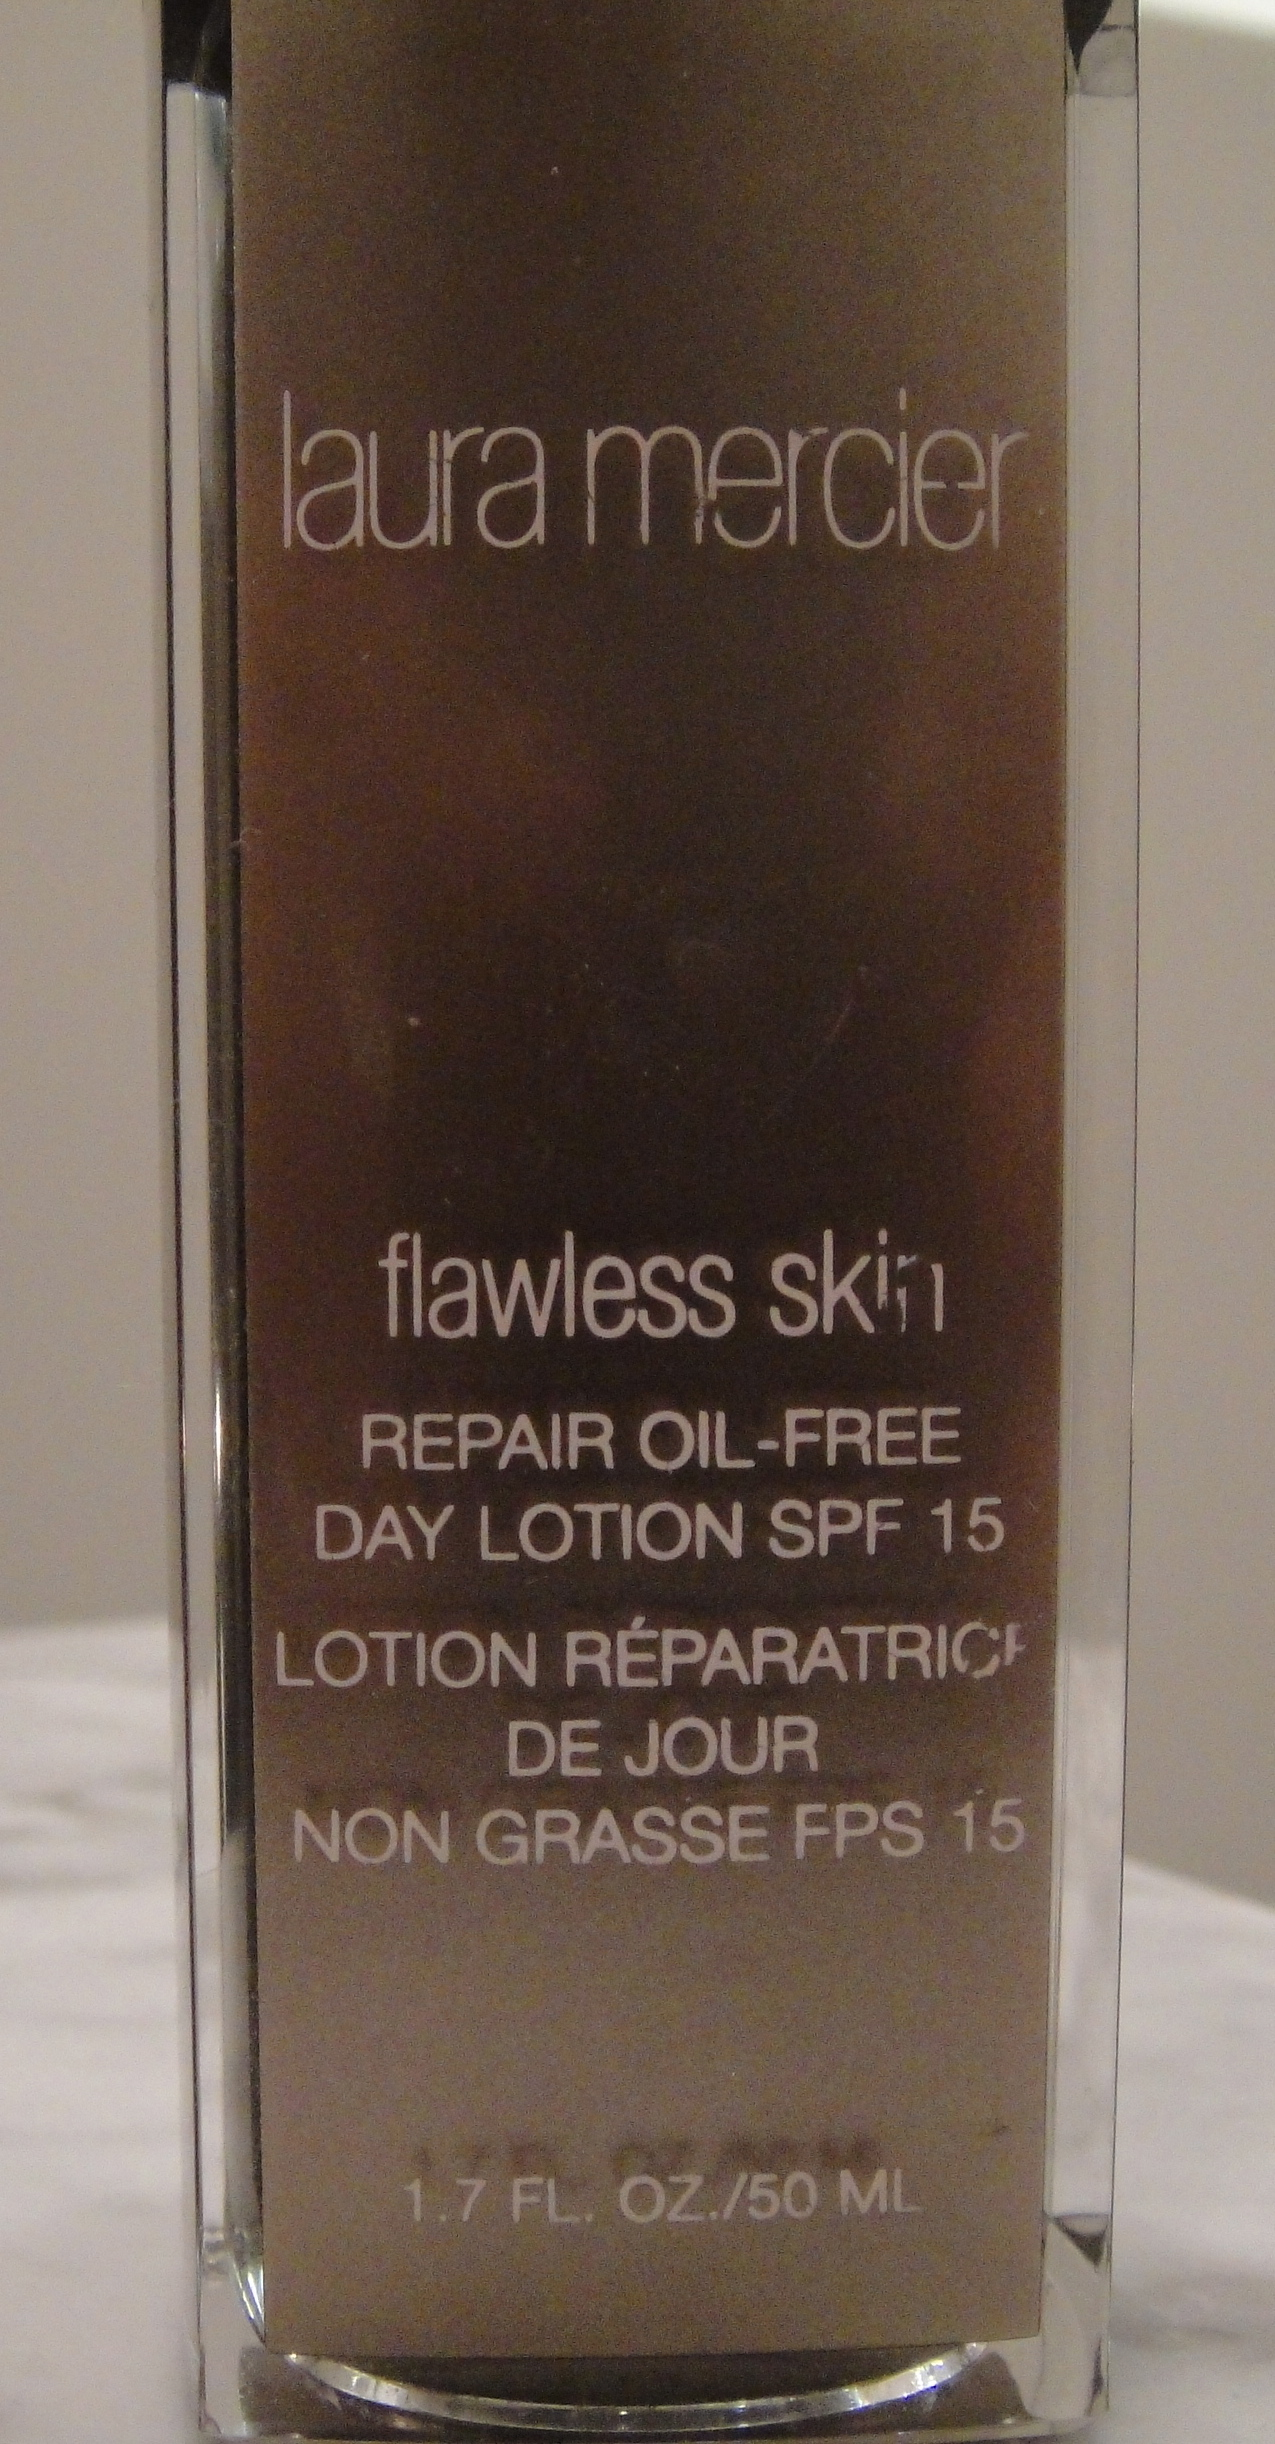 Face: Laura Mercier, flawless skin repair oil-free day lotion (SPF 15)